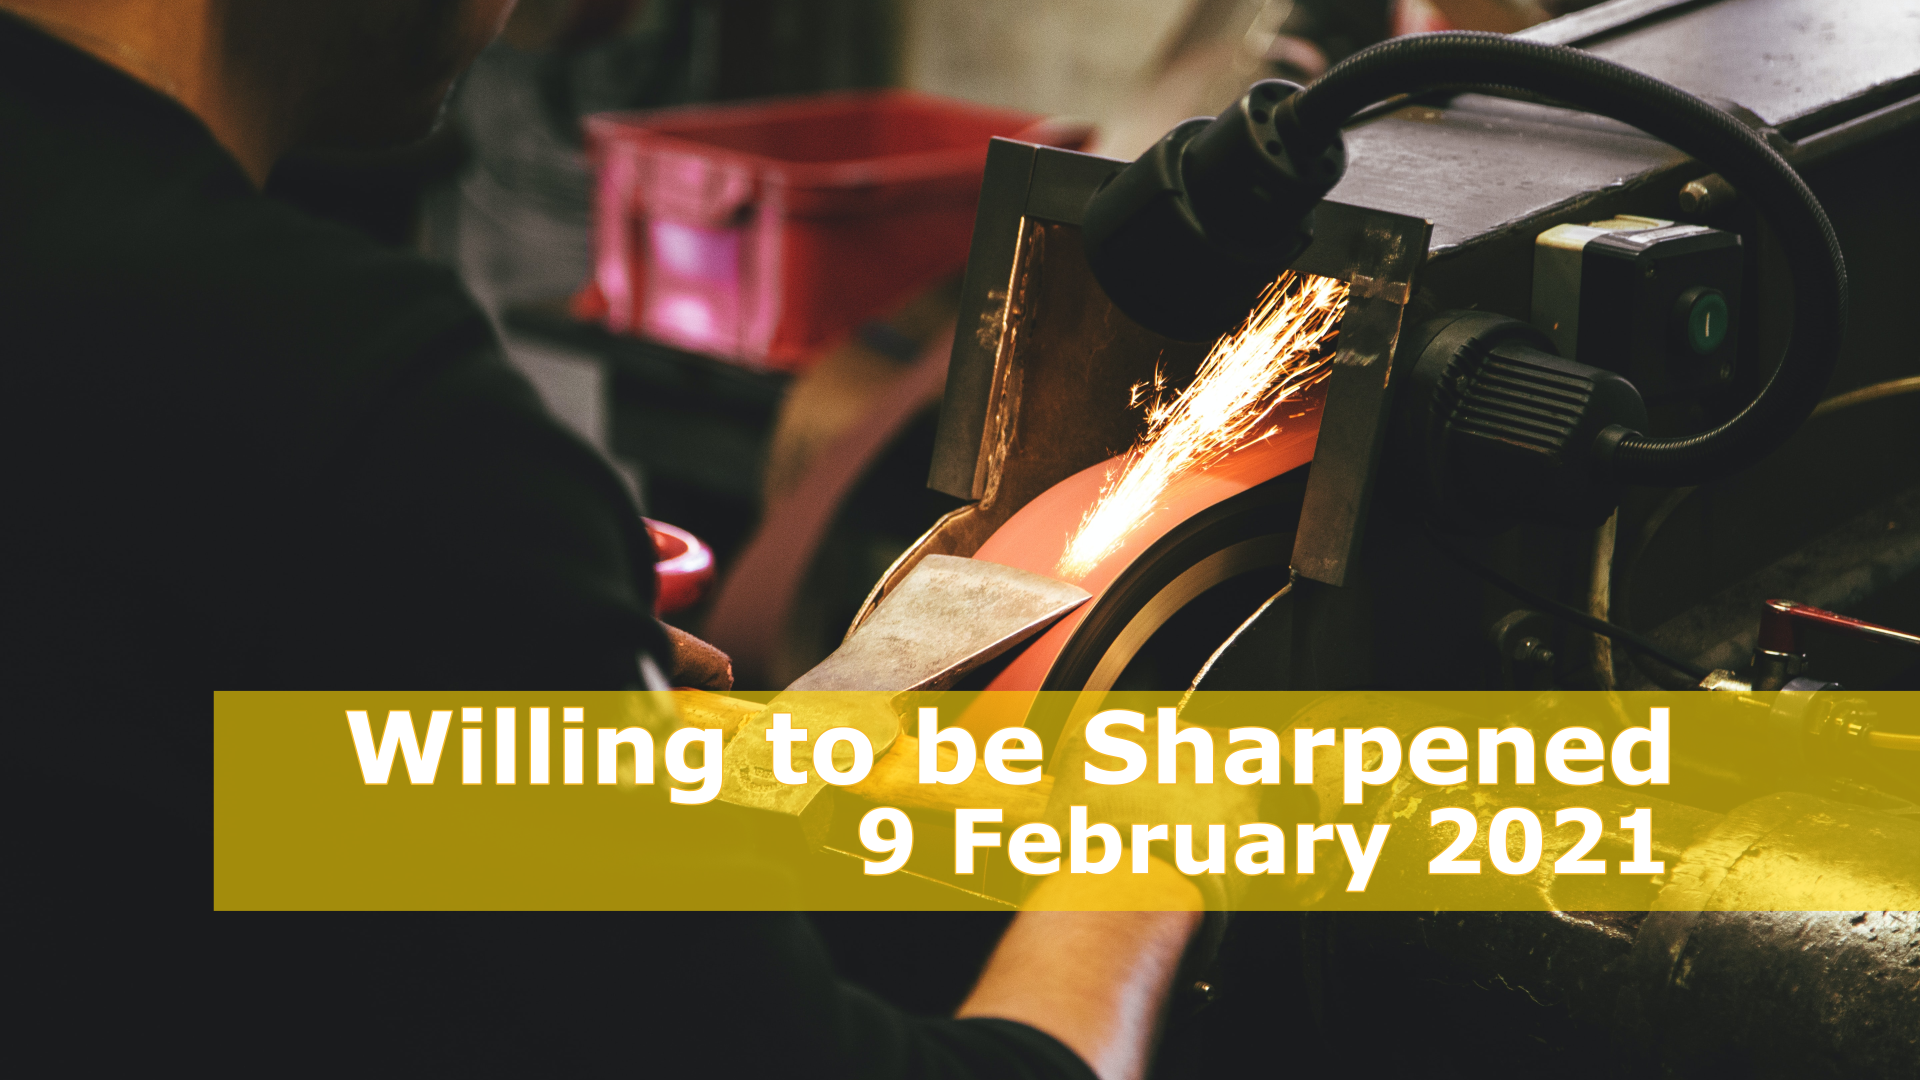 <span class='p-name'>Willing to be Sharpened — 9 February 2021 Devotional</span>